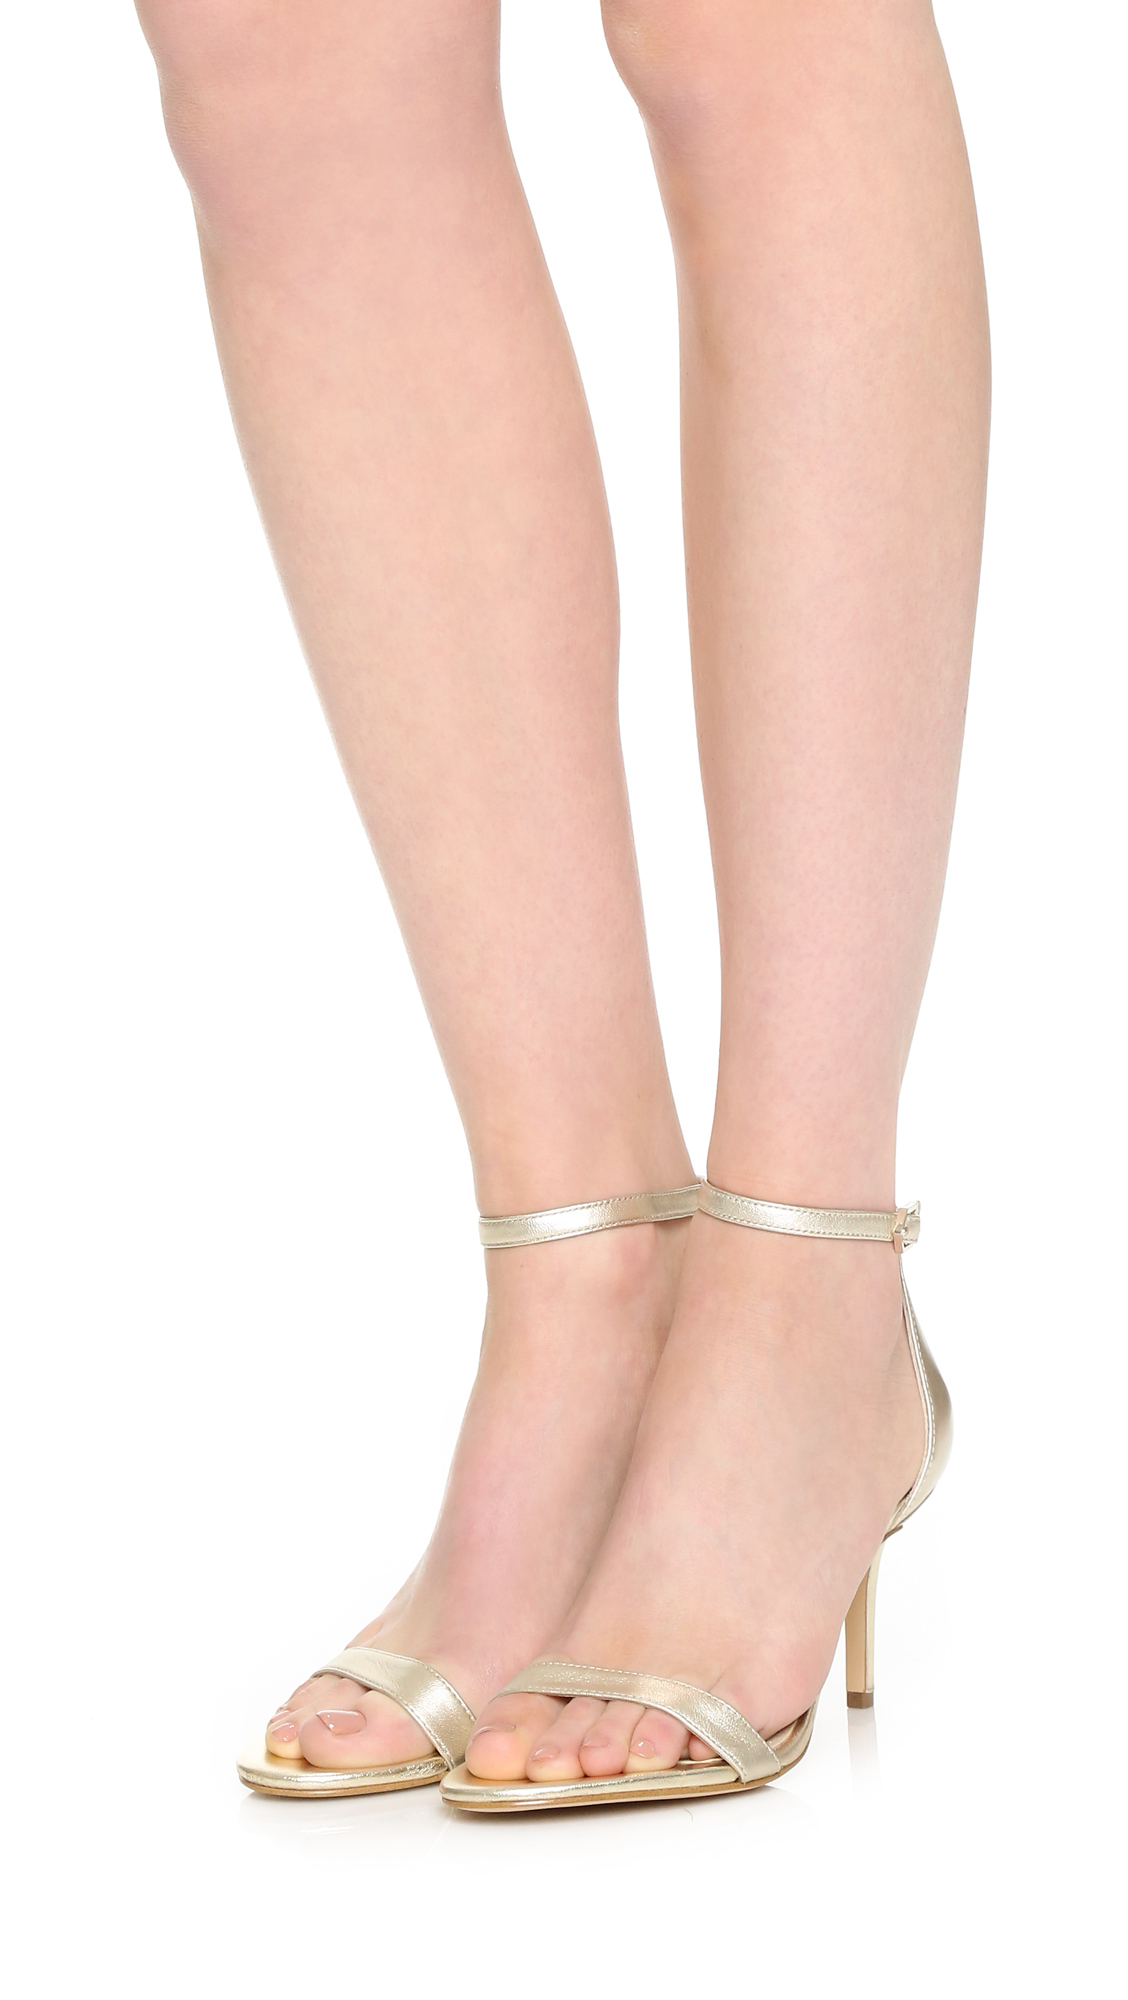 da768b5314a Lyst - Sam Edelman Patti Mid Heel Sandals in Natural